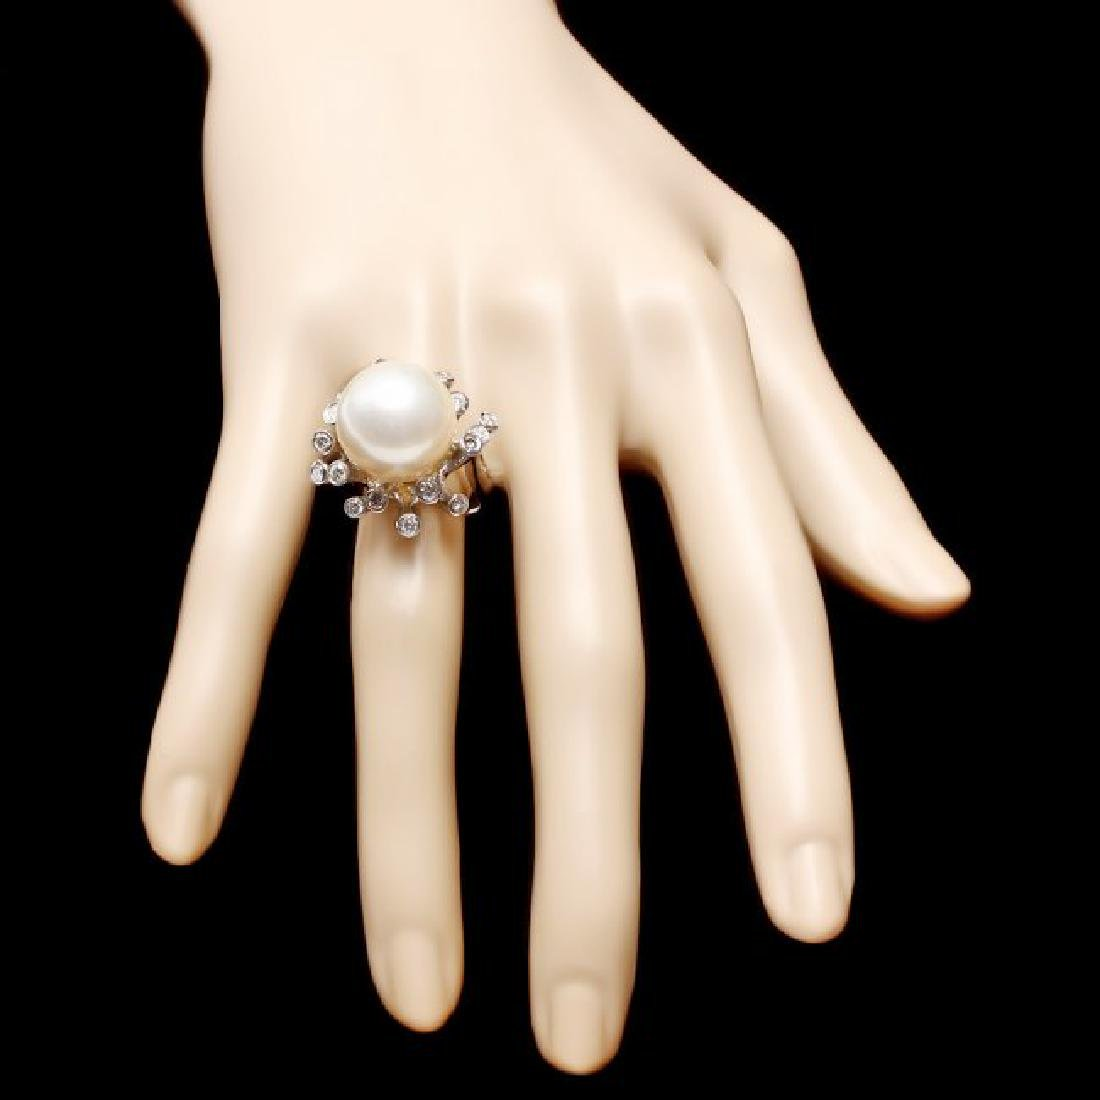 14k White Gold 15mm Pearl 0.85ct Diamond Ring - 4